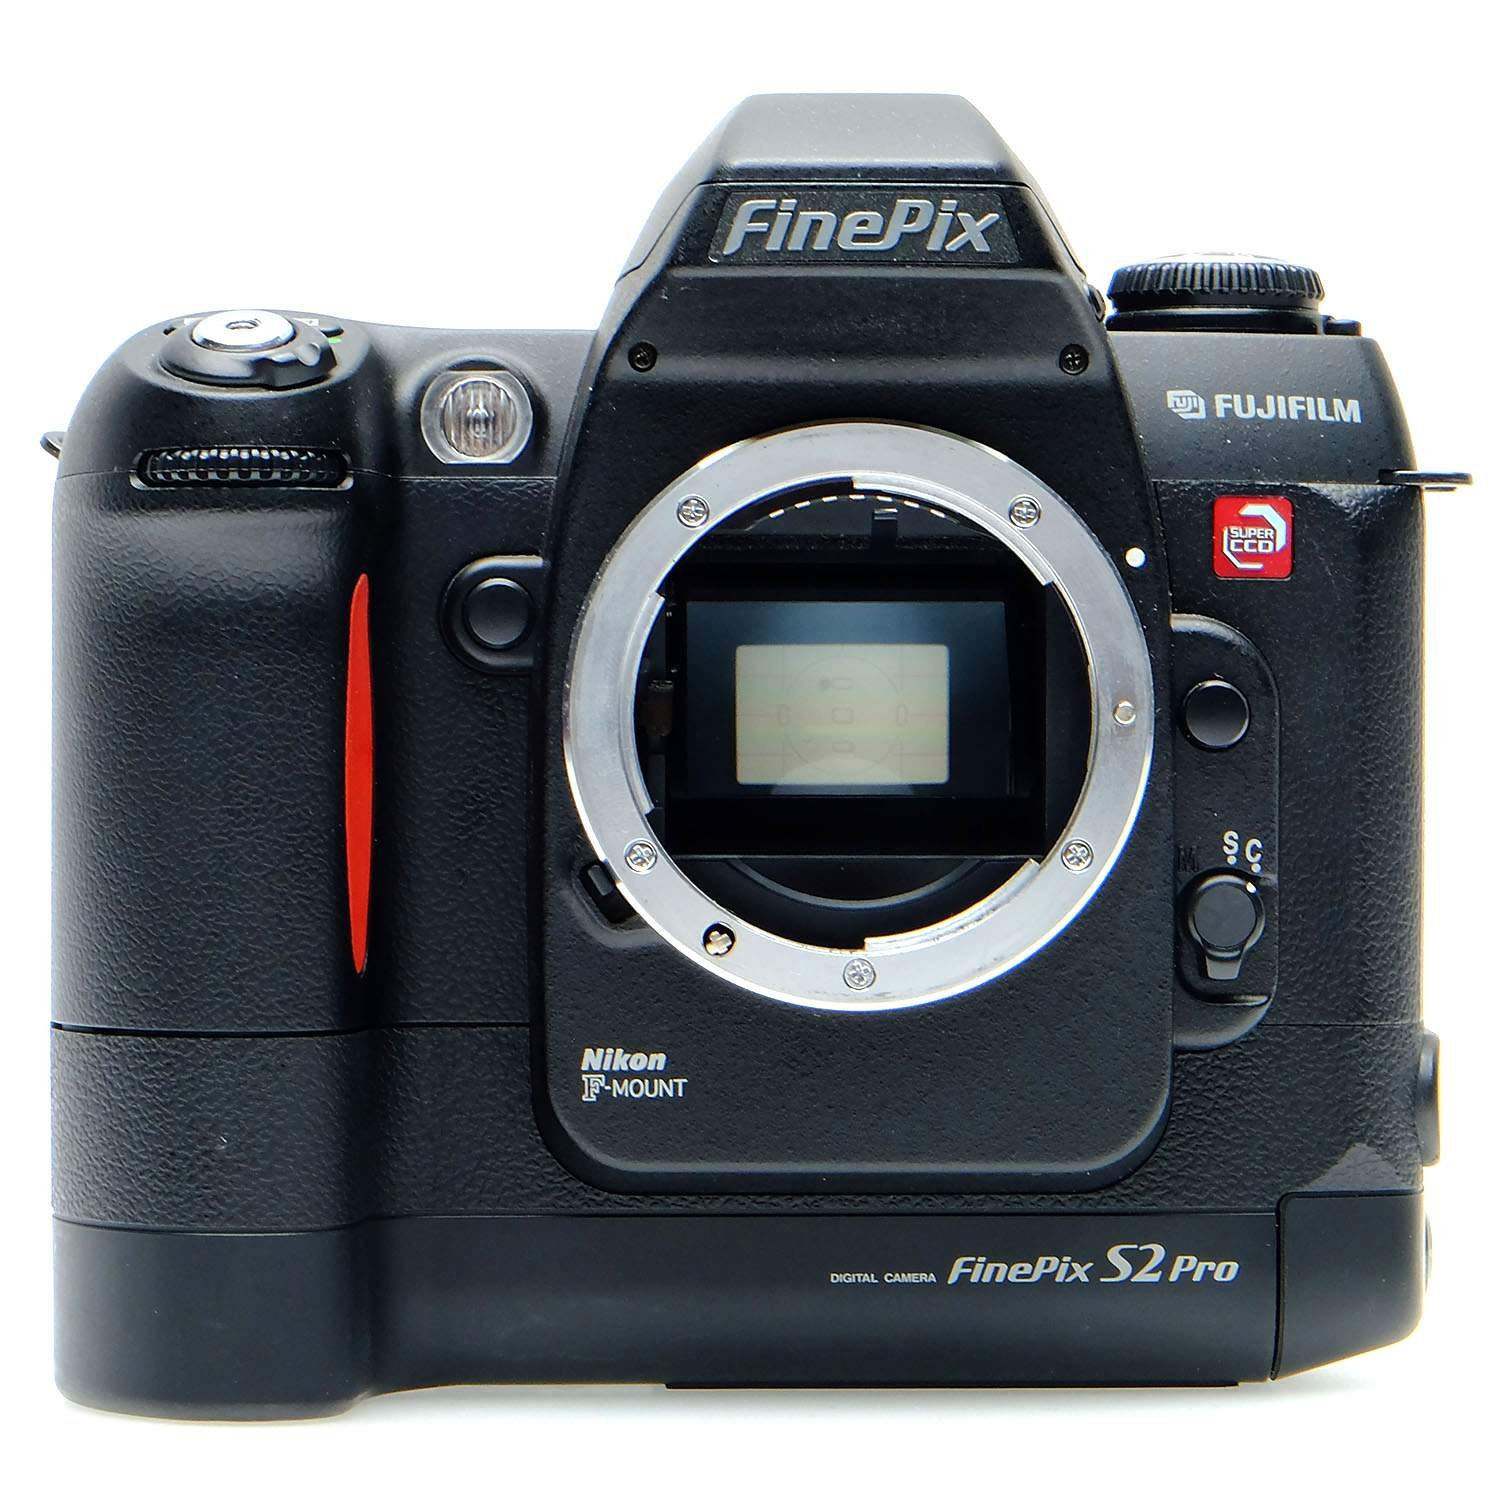 Amazon.com : Fujifilm Finepix S2 Pro 6.17MP Digital SLR Camera (Body Only)  : Slr Digital Cameras : Camera & Photo